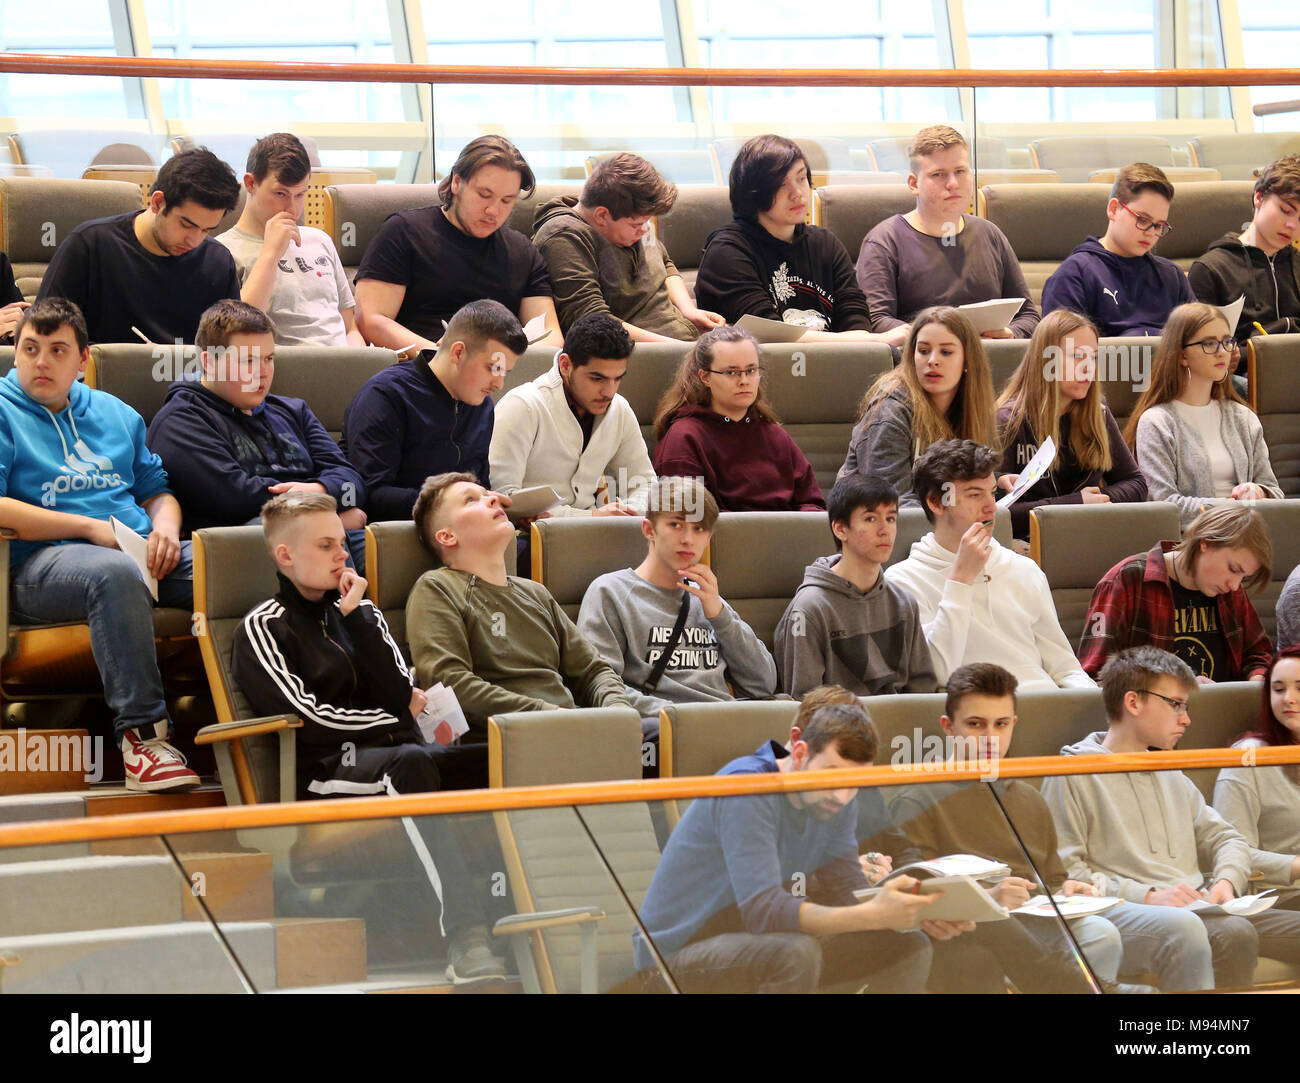 22 March 2018, Germany, Duesseldorf: Teenagers following the speech of North Rhine Westphalia's (NRW) Minister for Schools, Yvonne Gebauer, of the Free Democratic Party (FDP) at the session of the north rhine-westphalian state parliament. Topics of the session are rules for the state's art foundation and the introduction of a legislation amendment in schools for nine years of school until A-levels. Photo: Roland Weihrauch/dpa - Stock Image